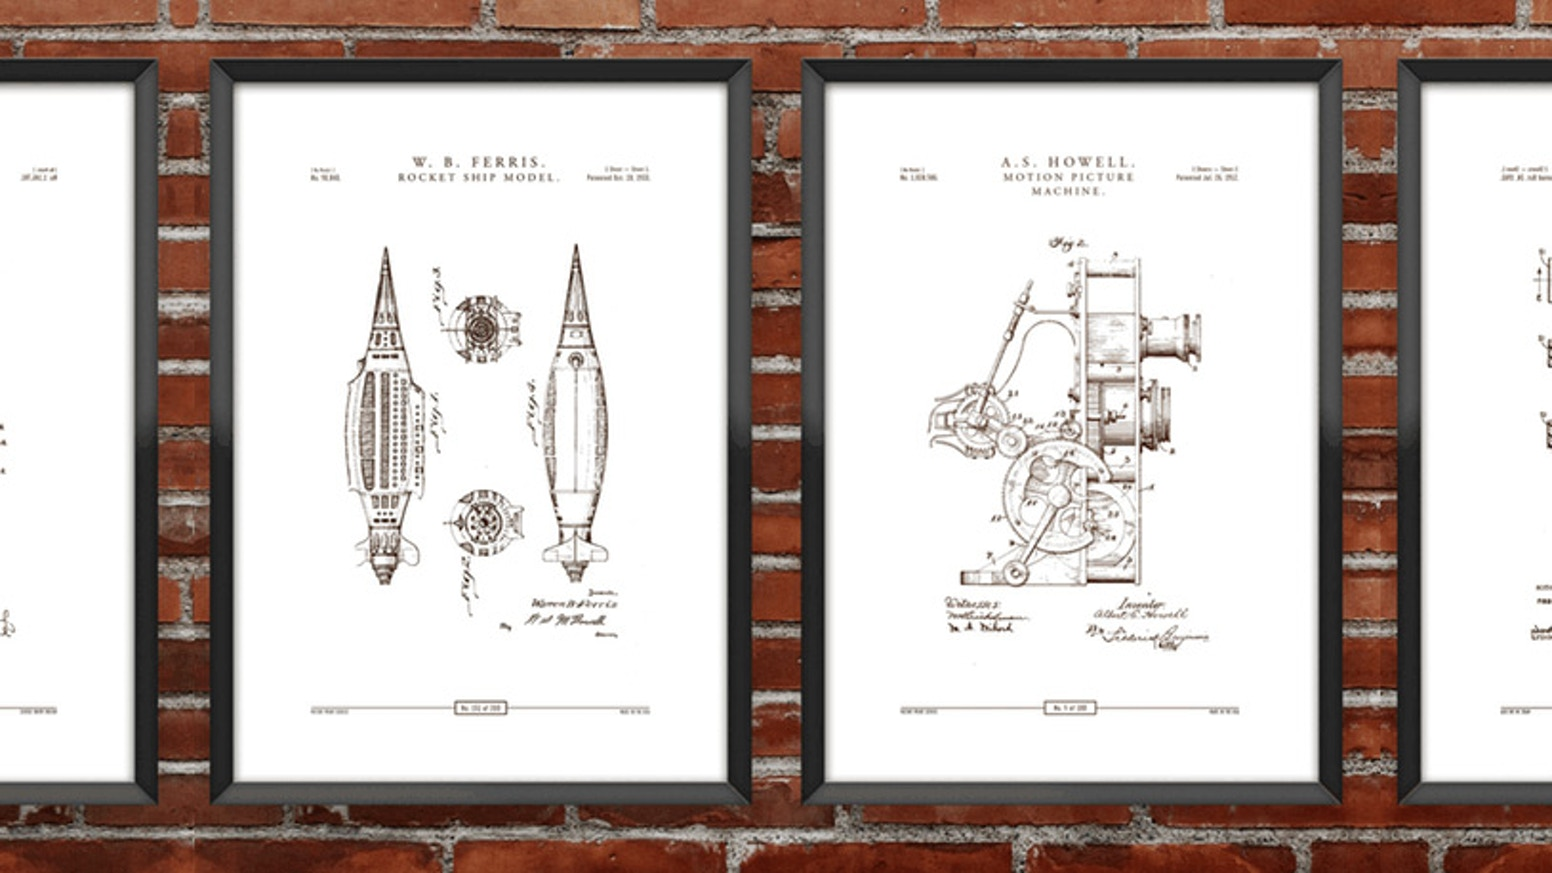 Poster series featuring over 500 of the most iconic patent designs. Everything has been redesigned to fit into a cohesive collection.